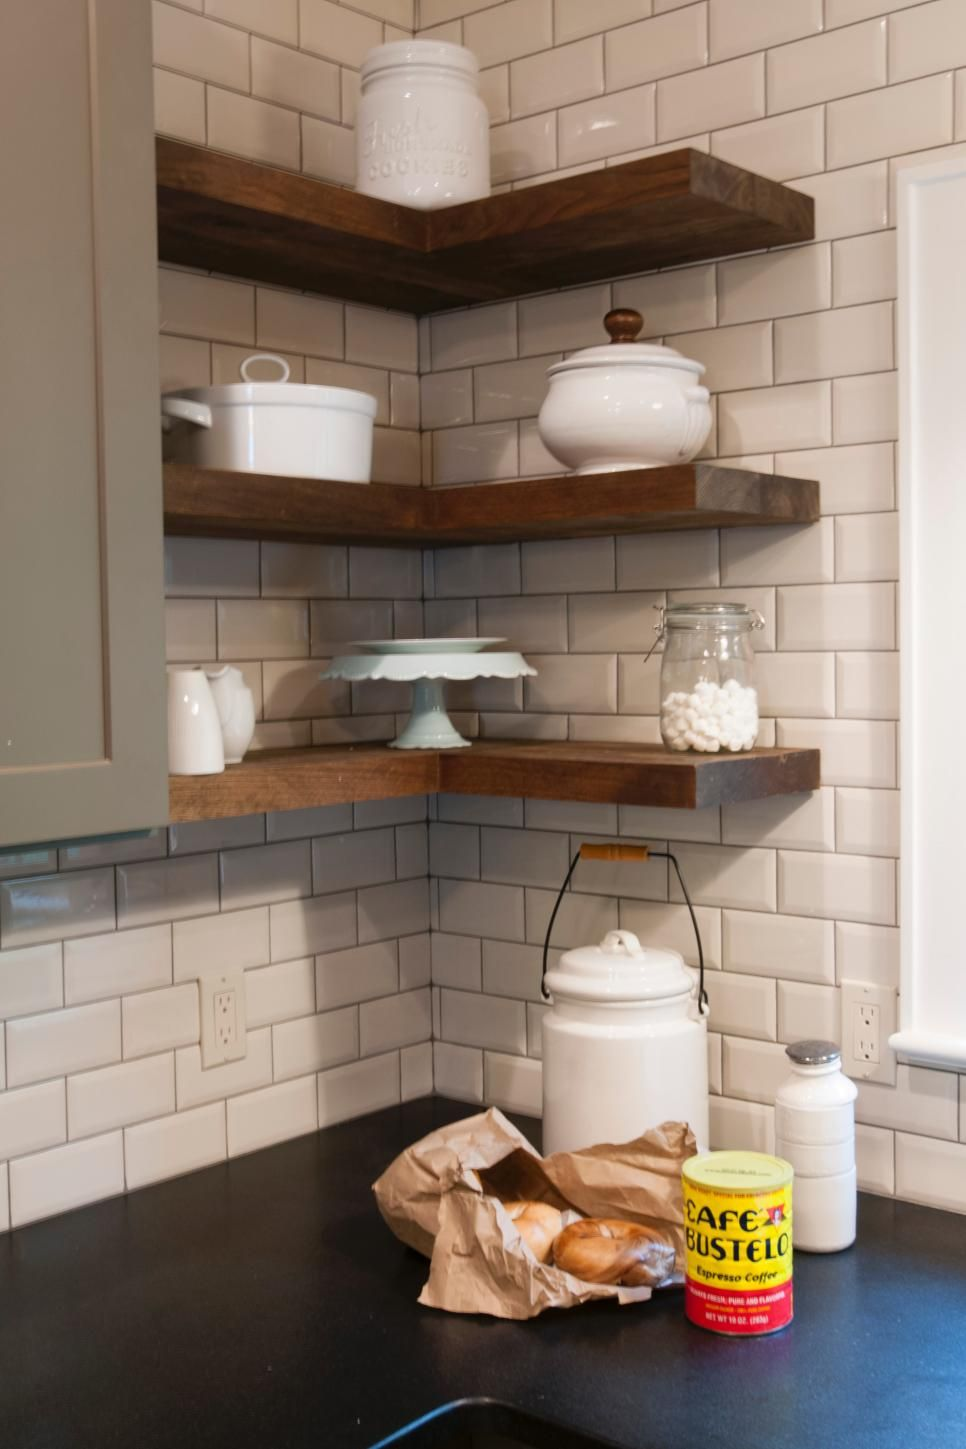 10 Lovely Kitchens With Open Shelving Green Kitchen Cabinets Kitchen Design Small Open Kitchen Shelves